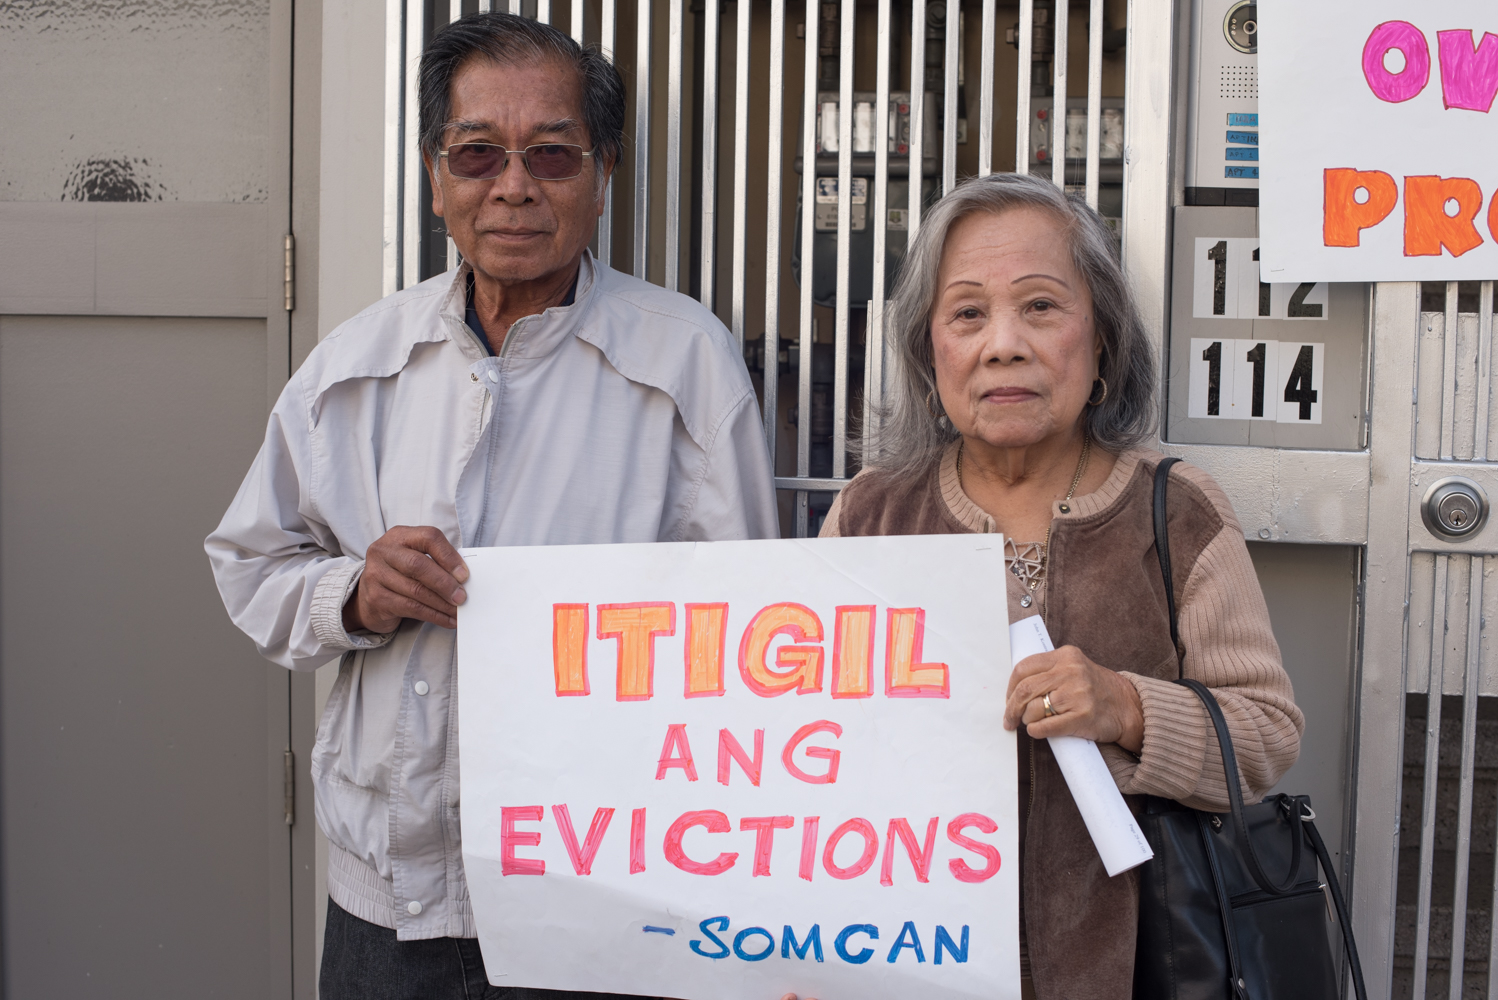 two older people stand holding a sign protesting evictions